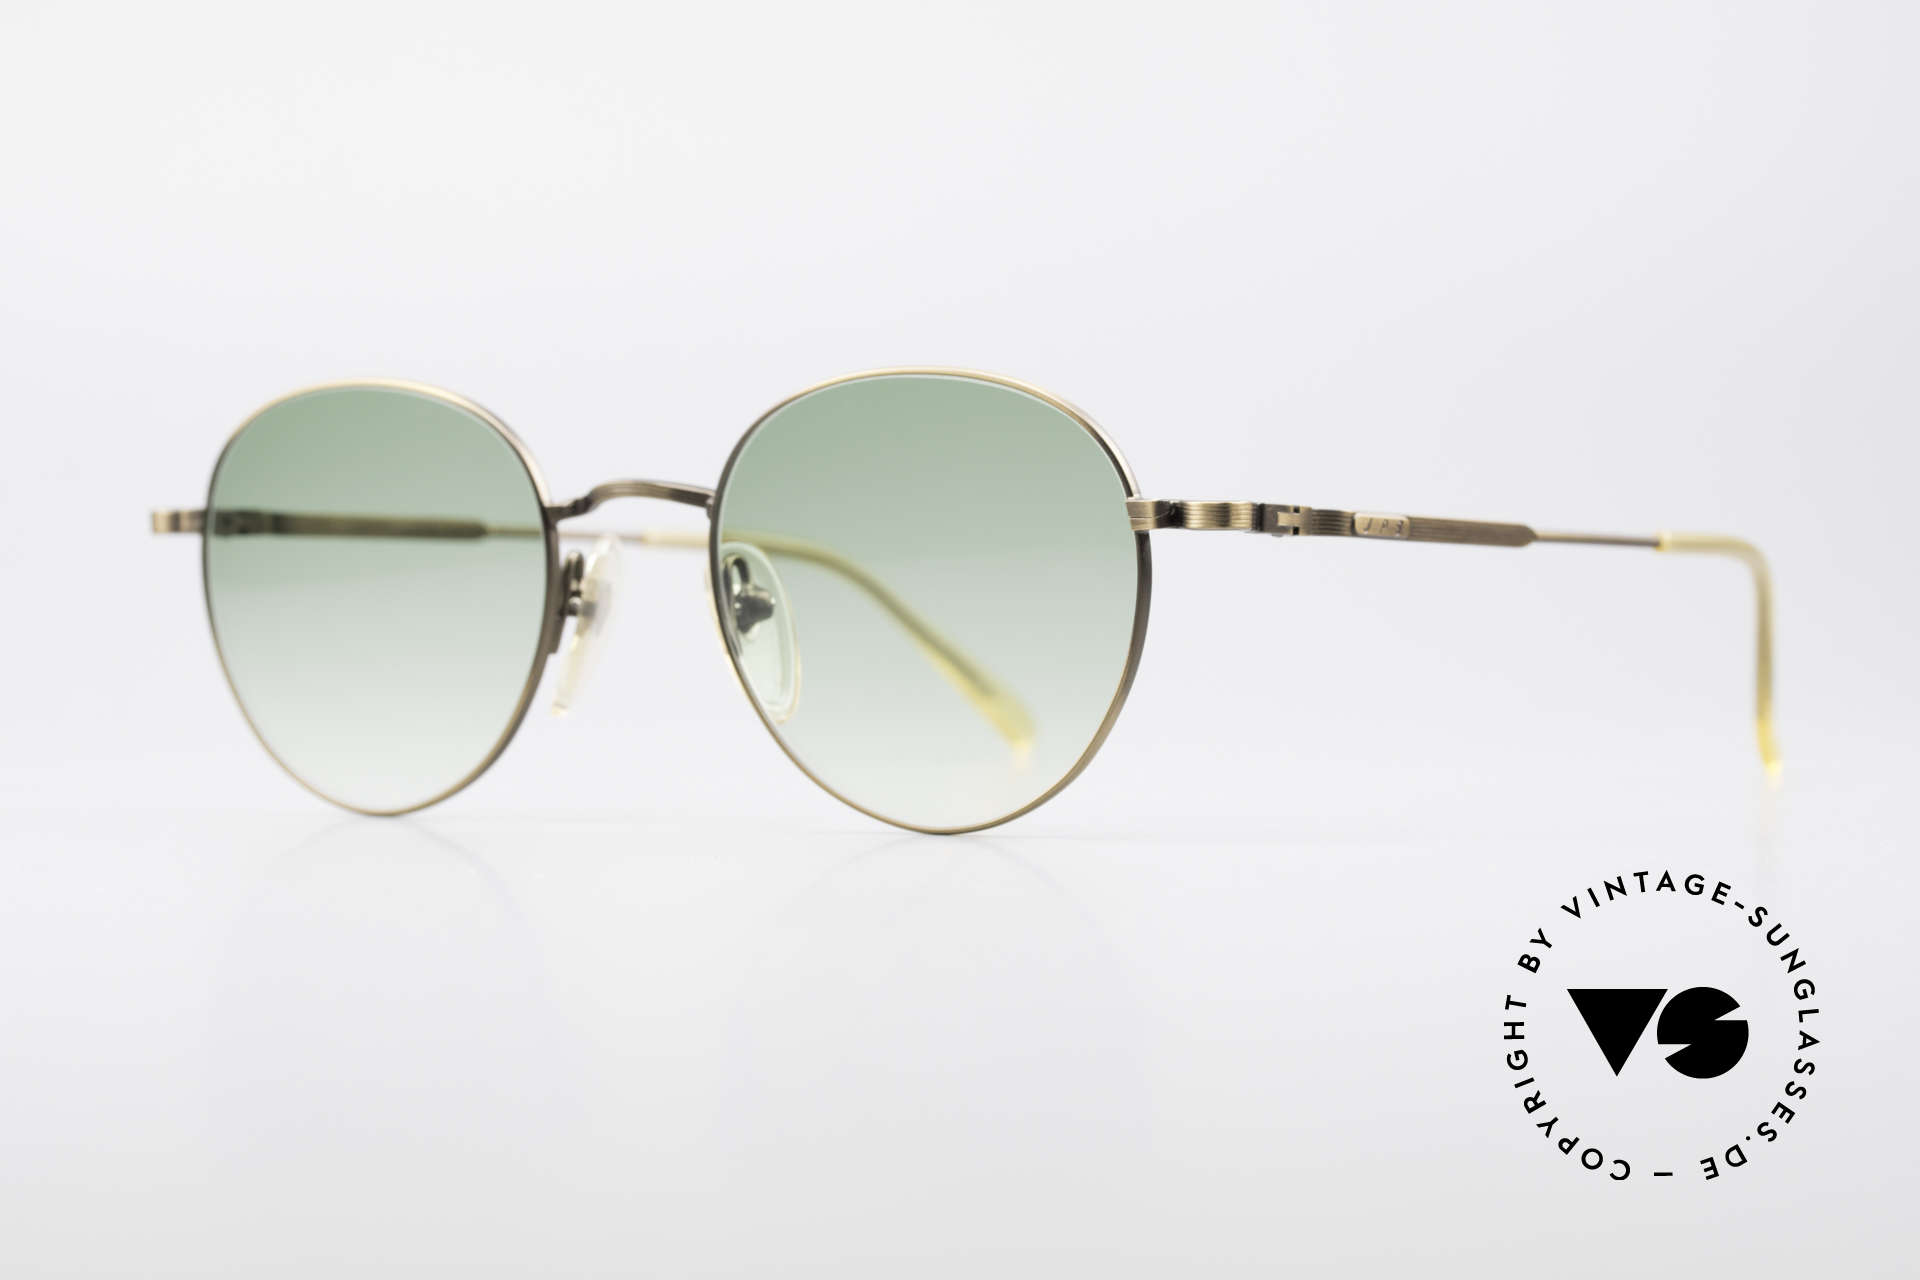 "Jean Paul Gaultier 55-1174 Round Designer Sunglasses, also called by Gaultier: ""burnt gold"" or ""antique gold"", Made for Men and Women"